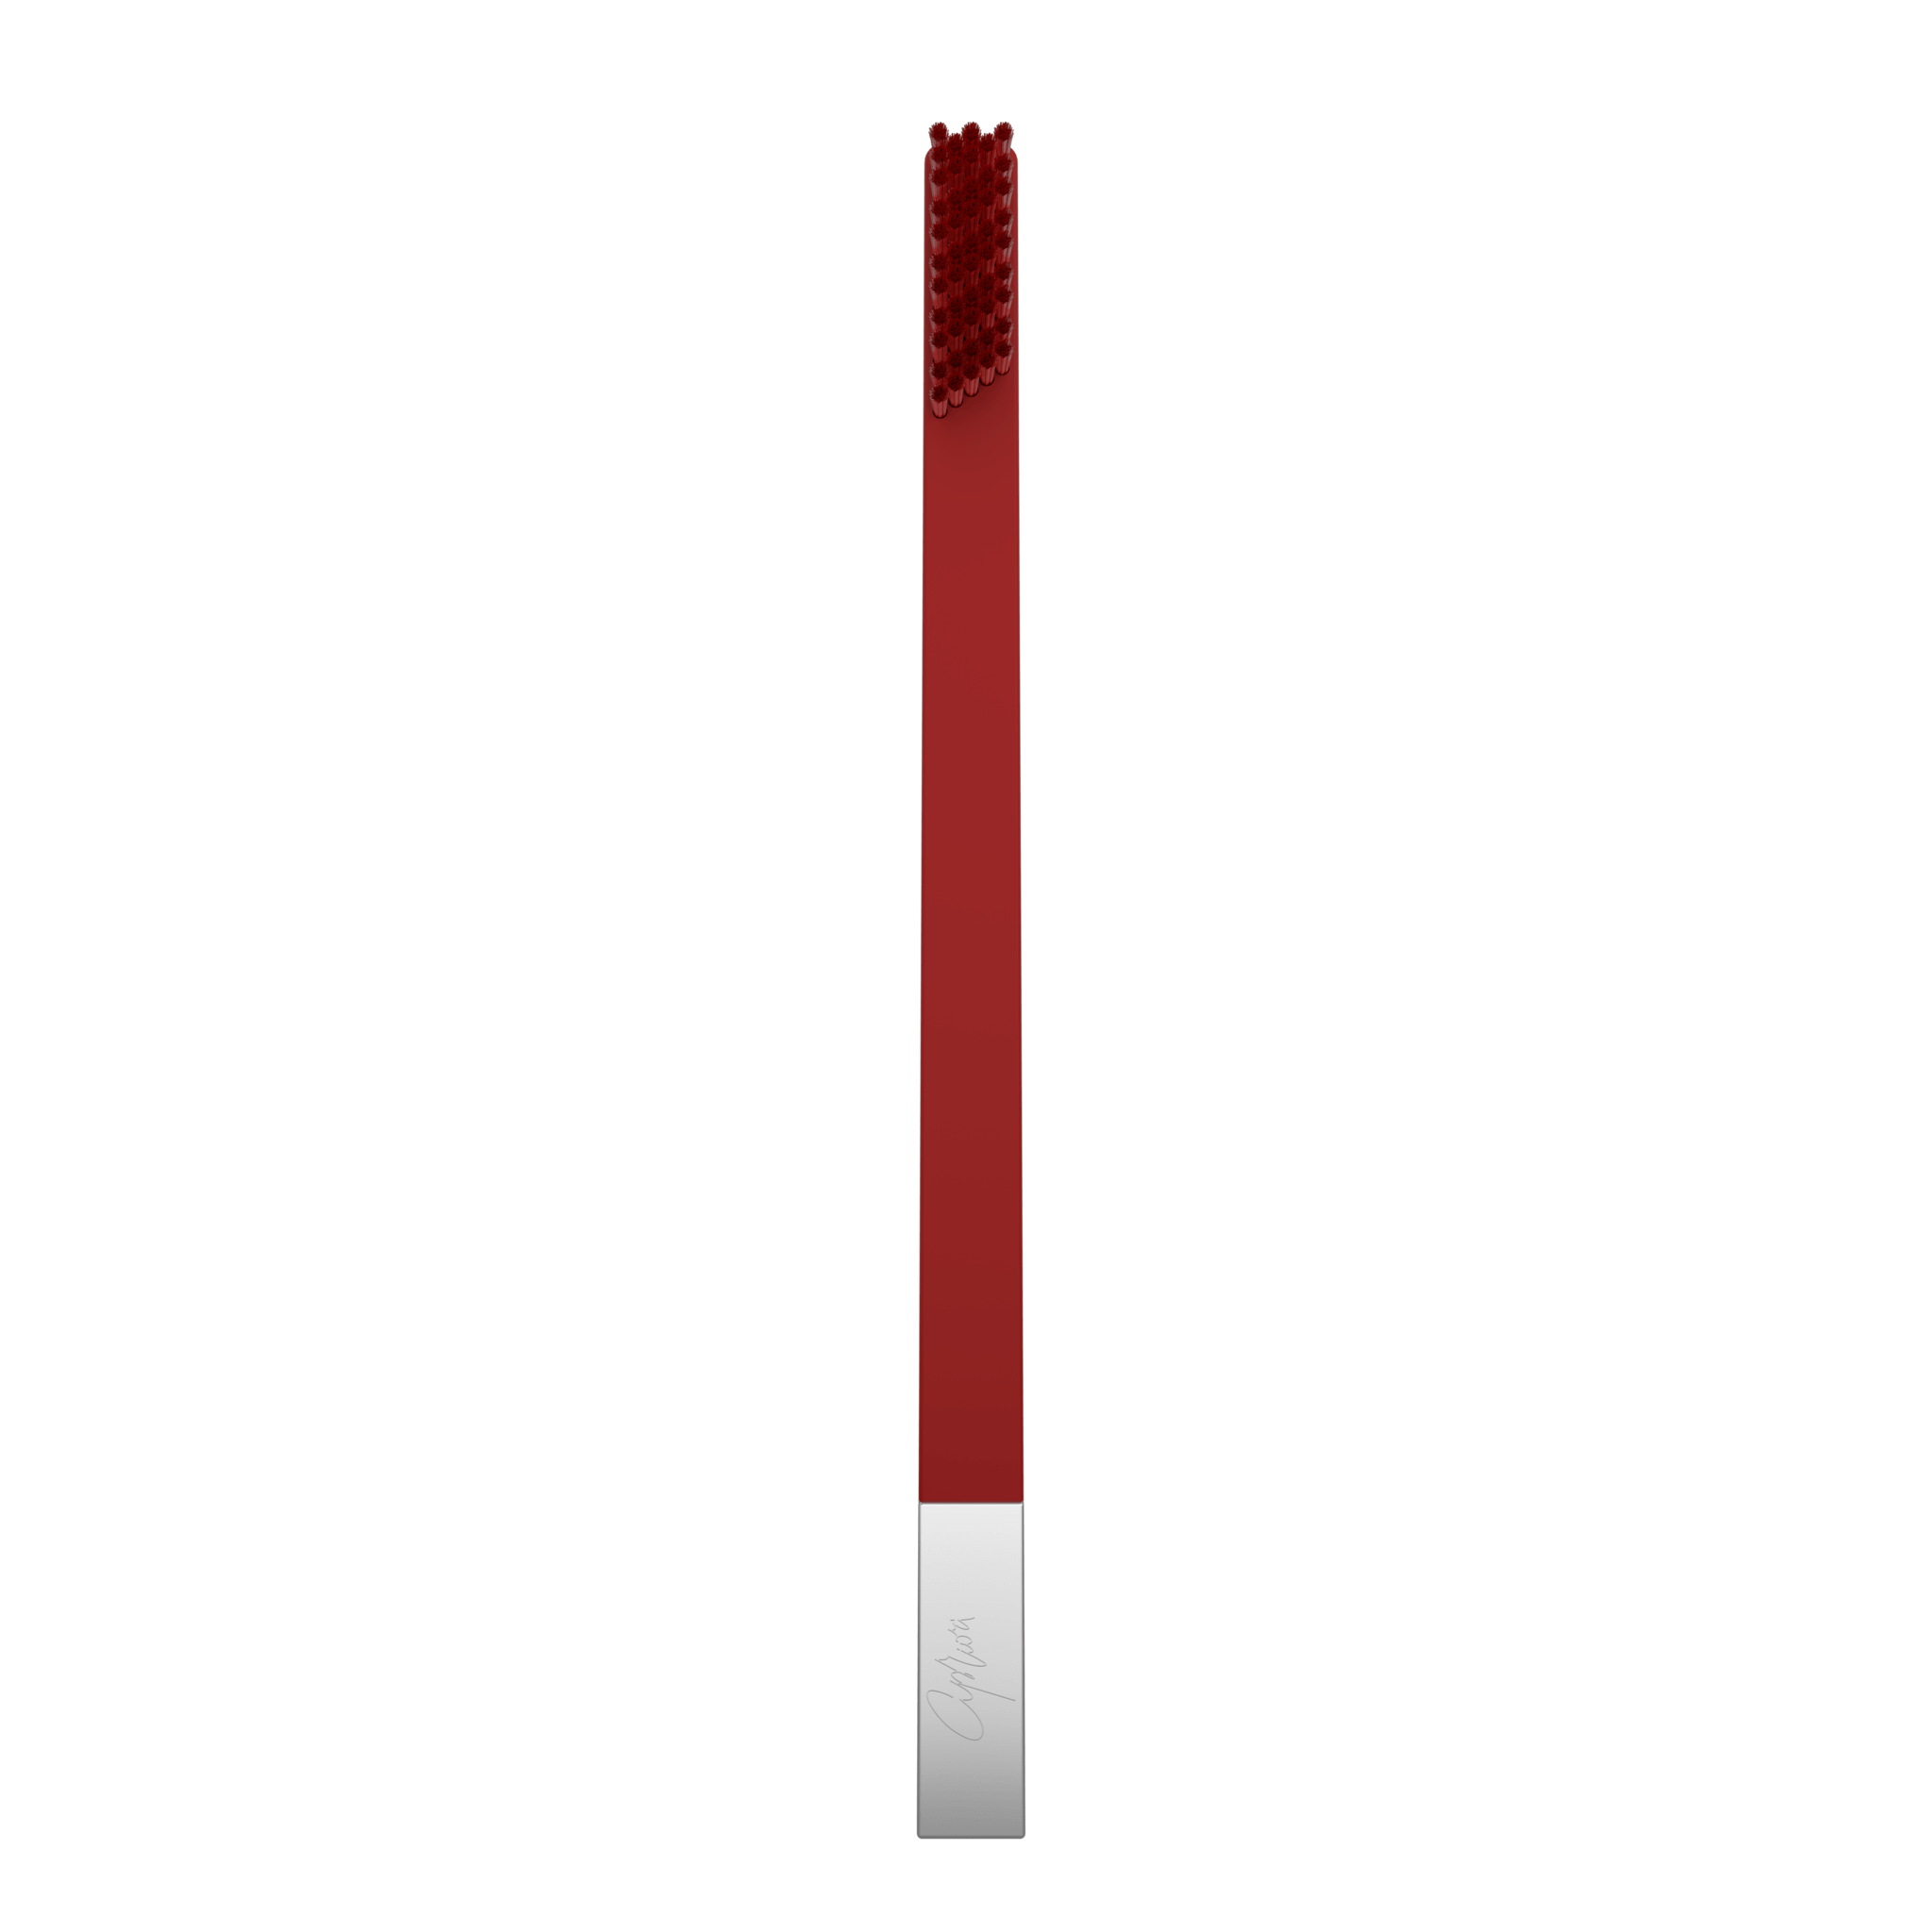 SLIM by Apriori red & silver disposable toothbrush